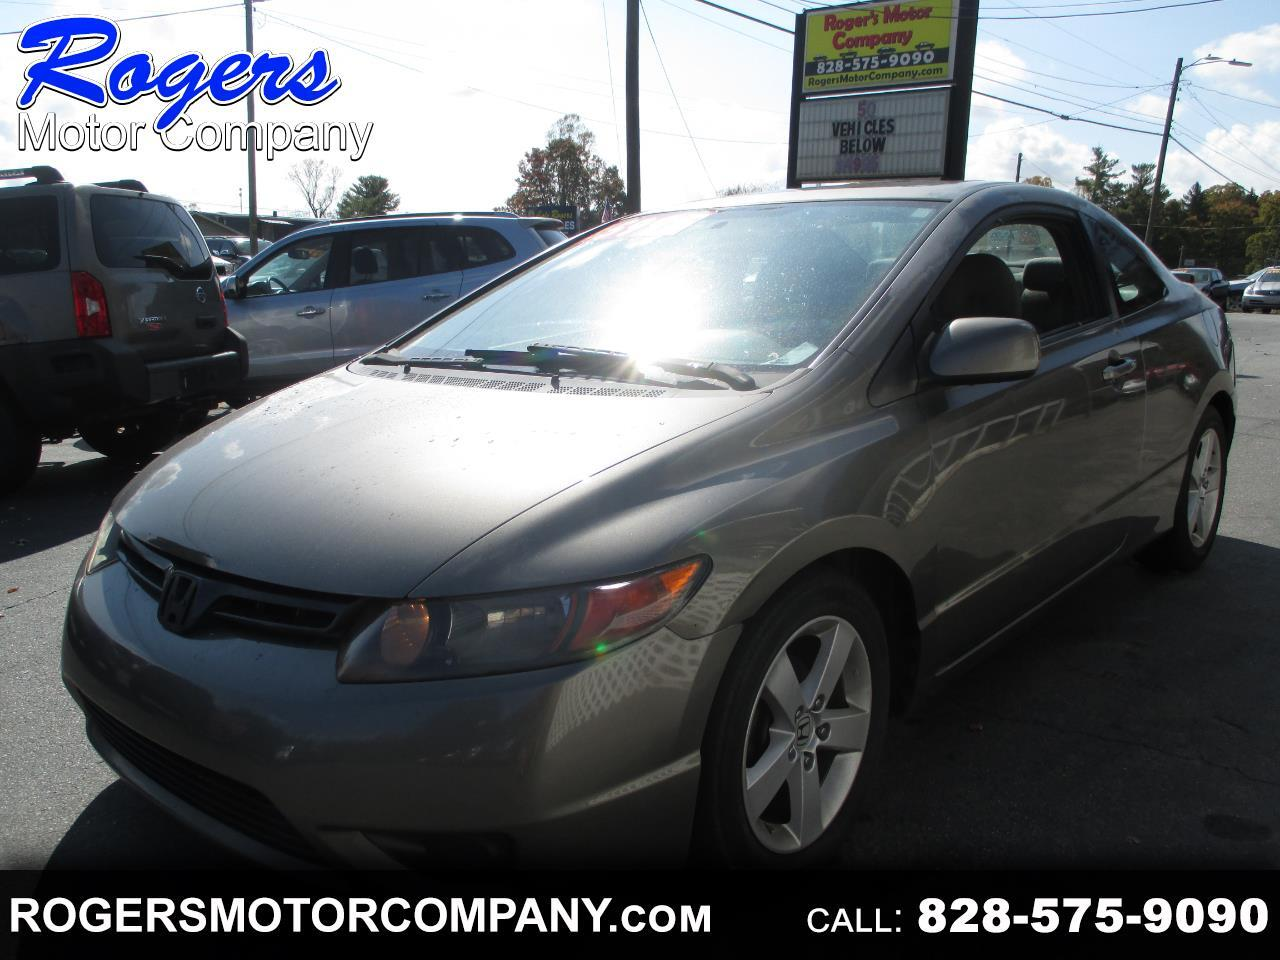 Honda Civic EX Coupe AT with Navigation 2008